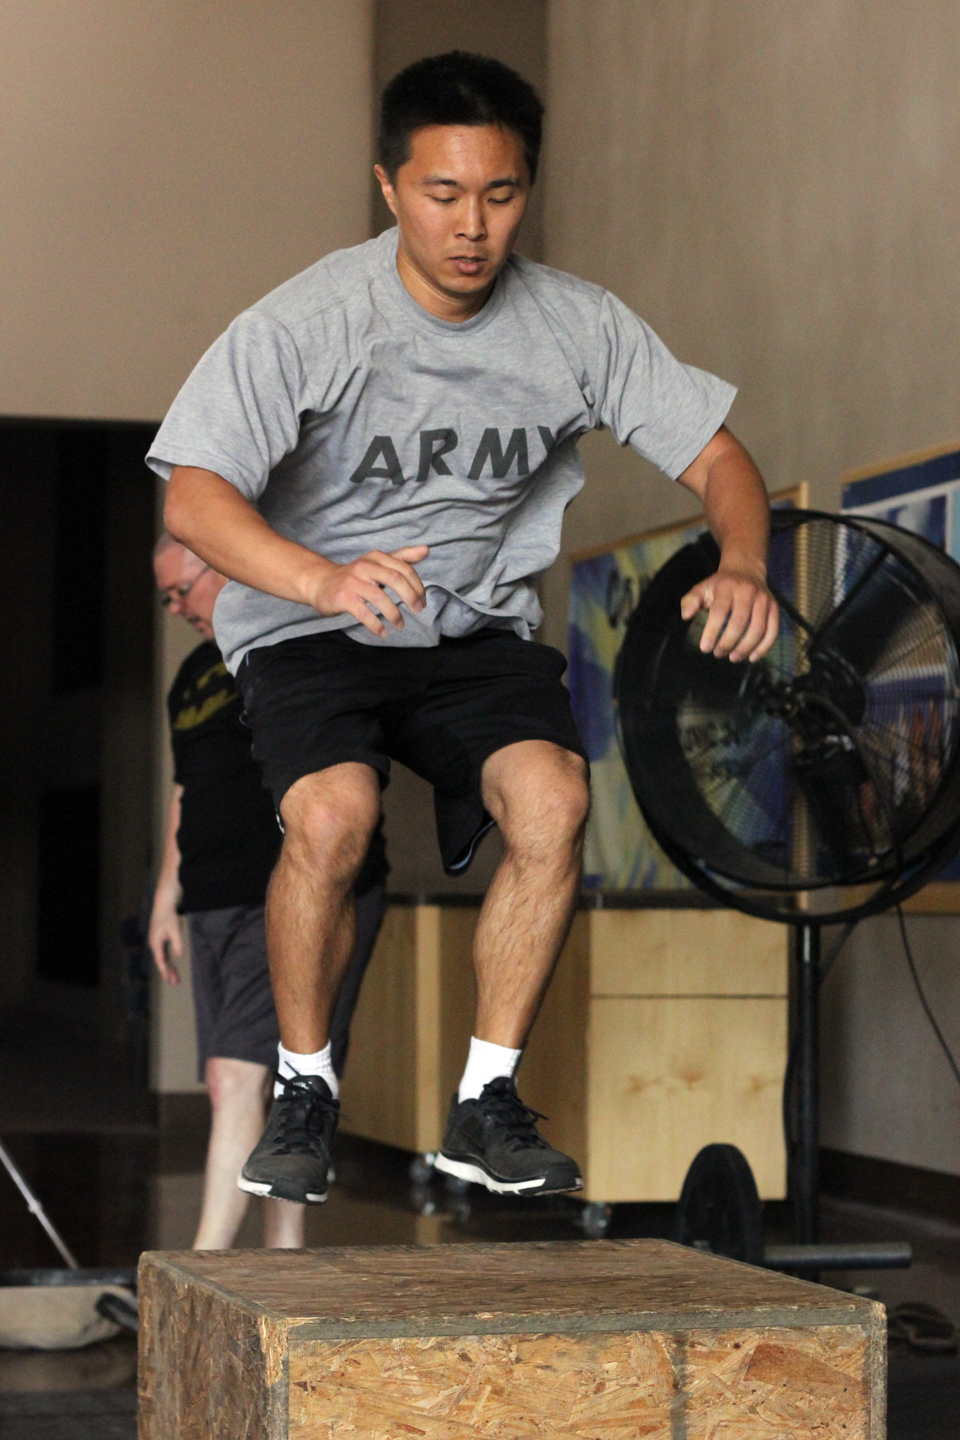 U.S. Army veteran Daniel Chun participates in a Memorial Day workout in Chandler, Ariz. (Photo by Mauro Whiteman, News21)